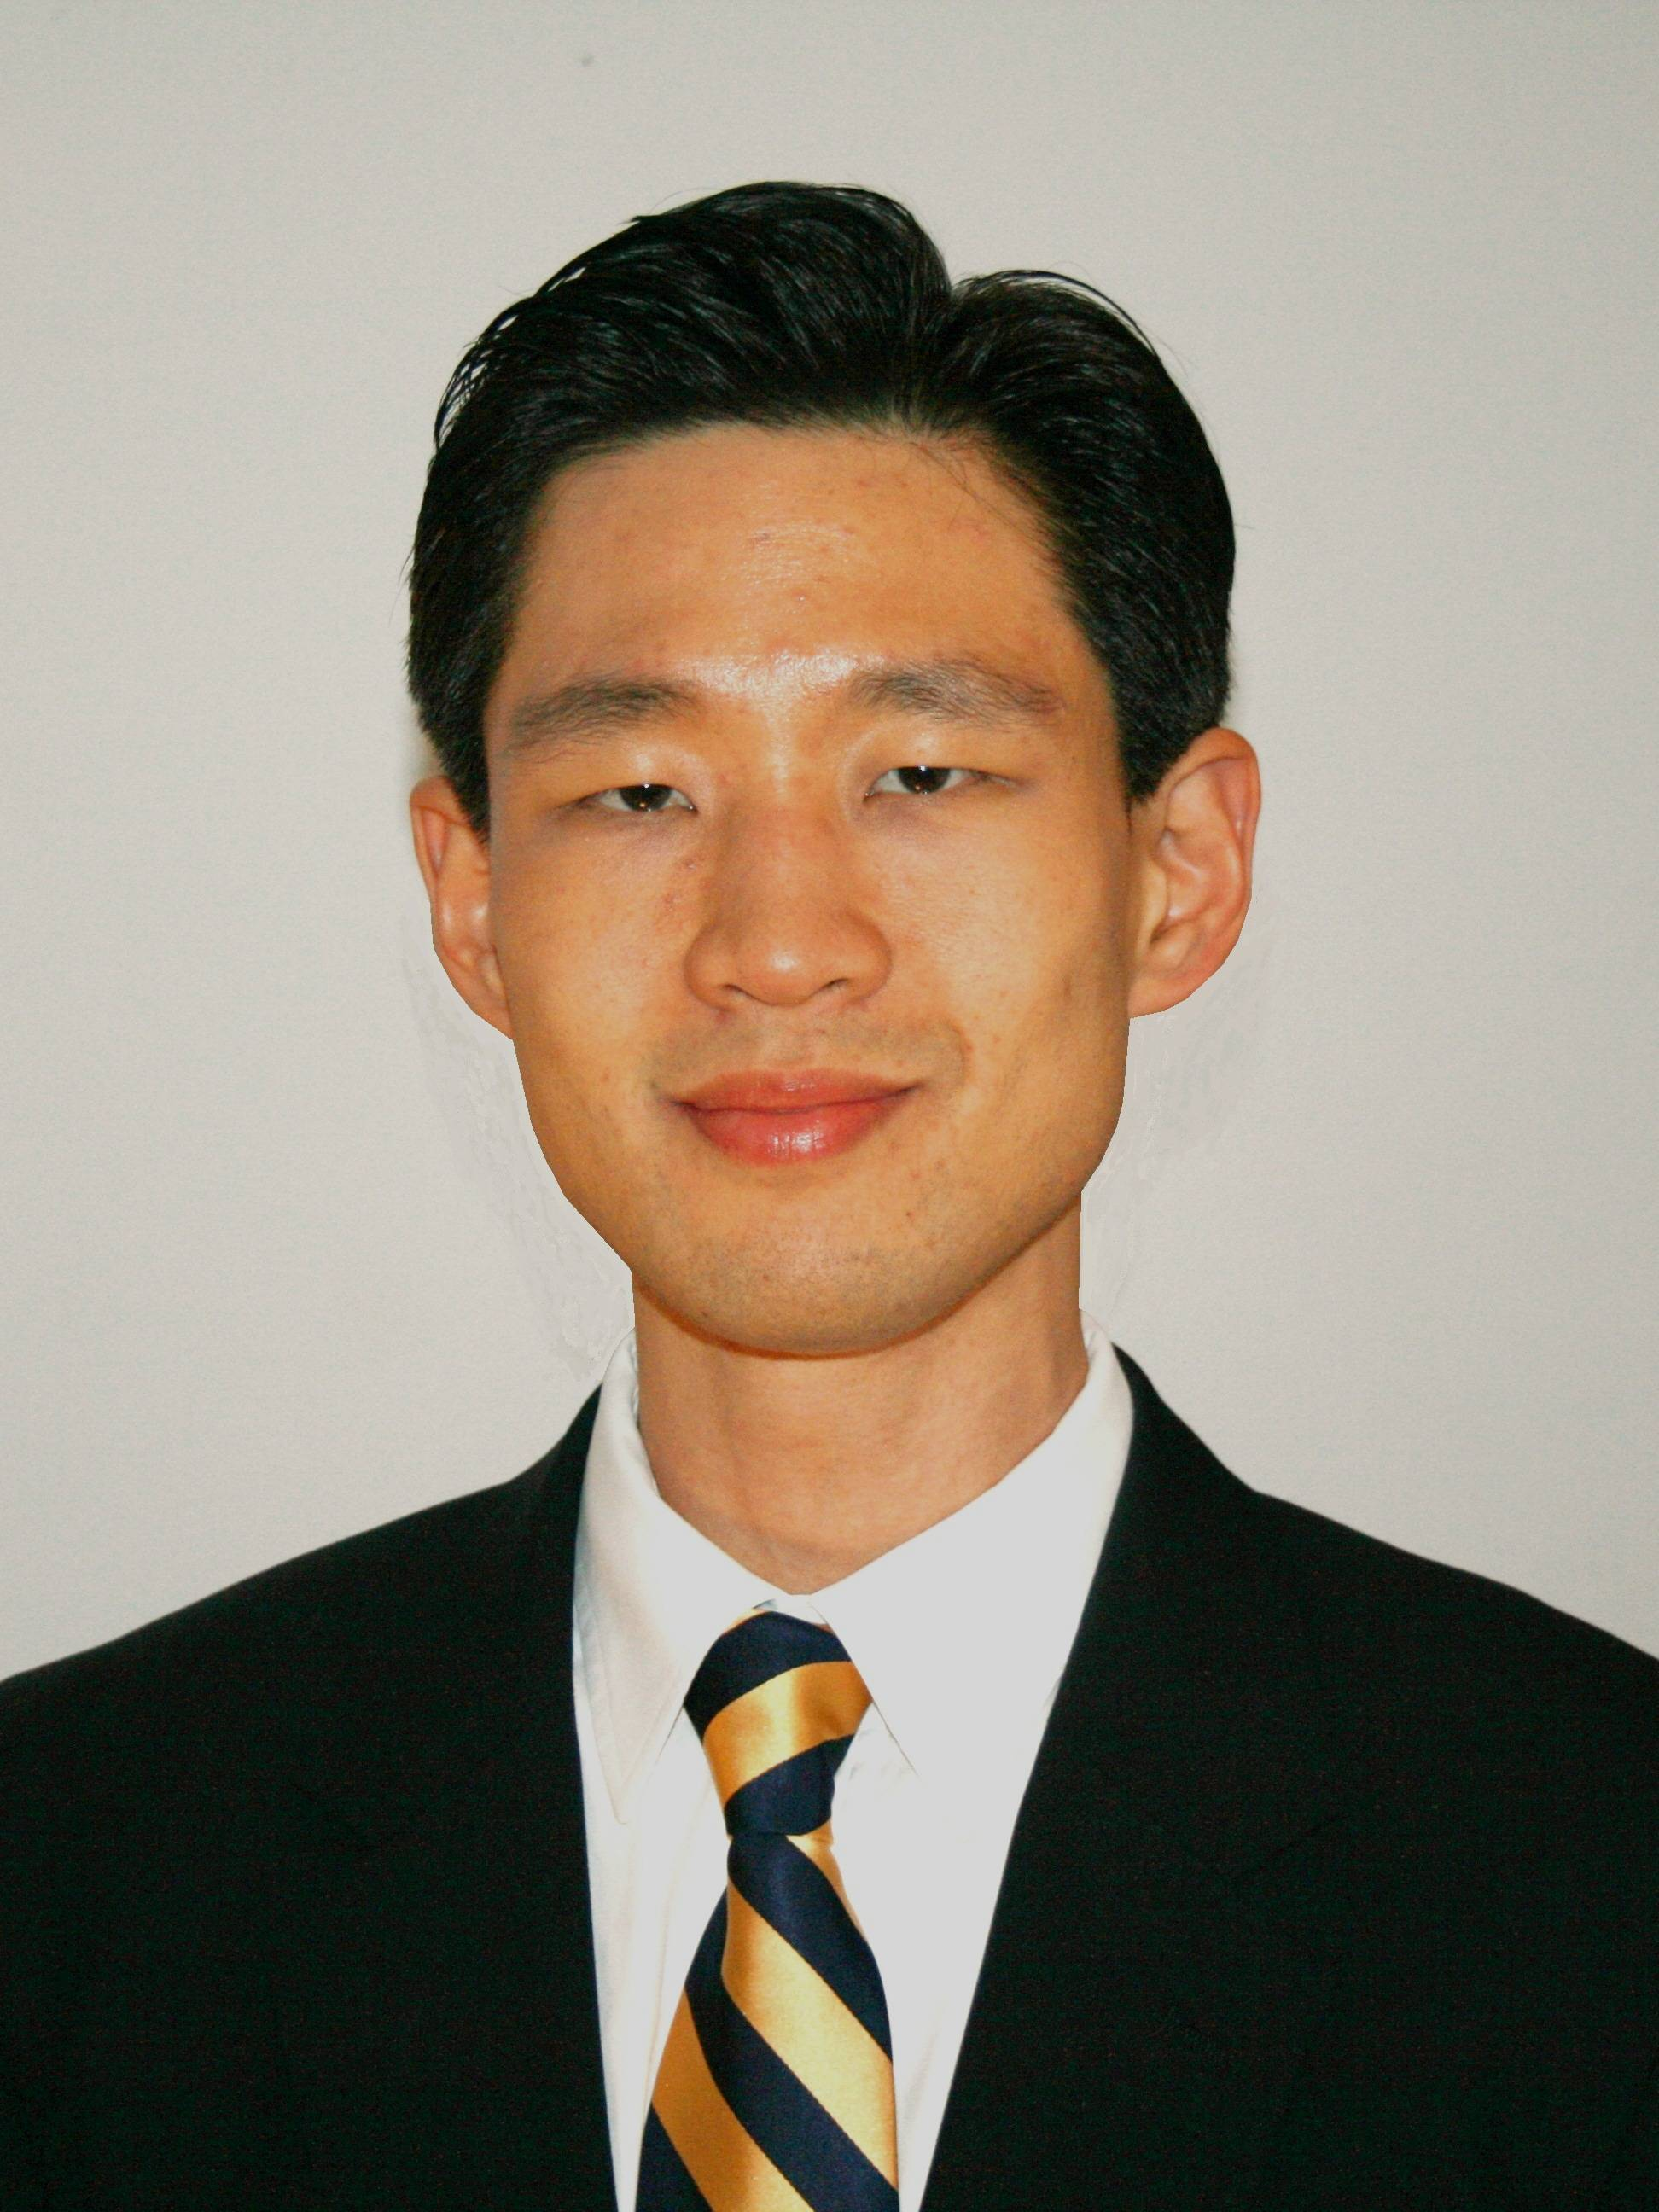 Abraham Lee, running for Maine Township Board (4-year Terms)